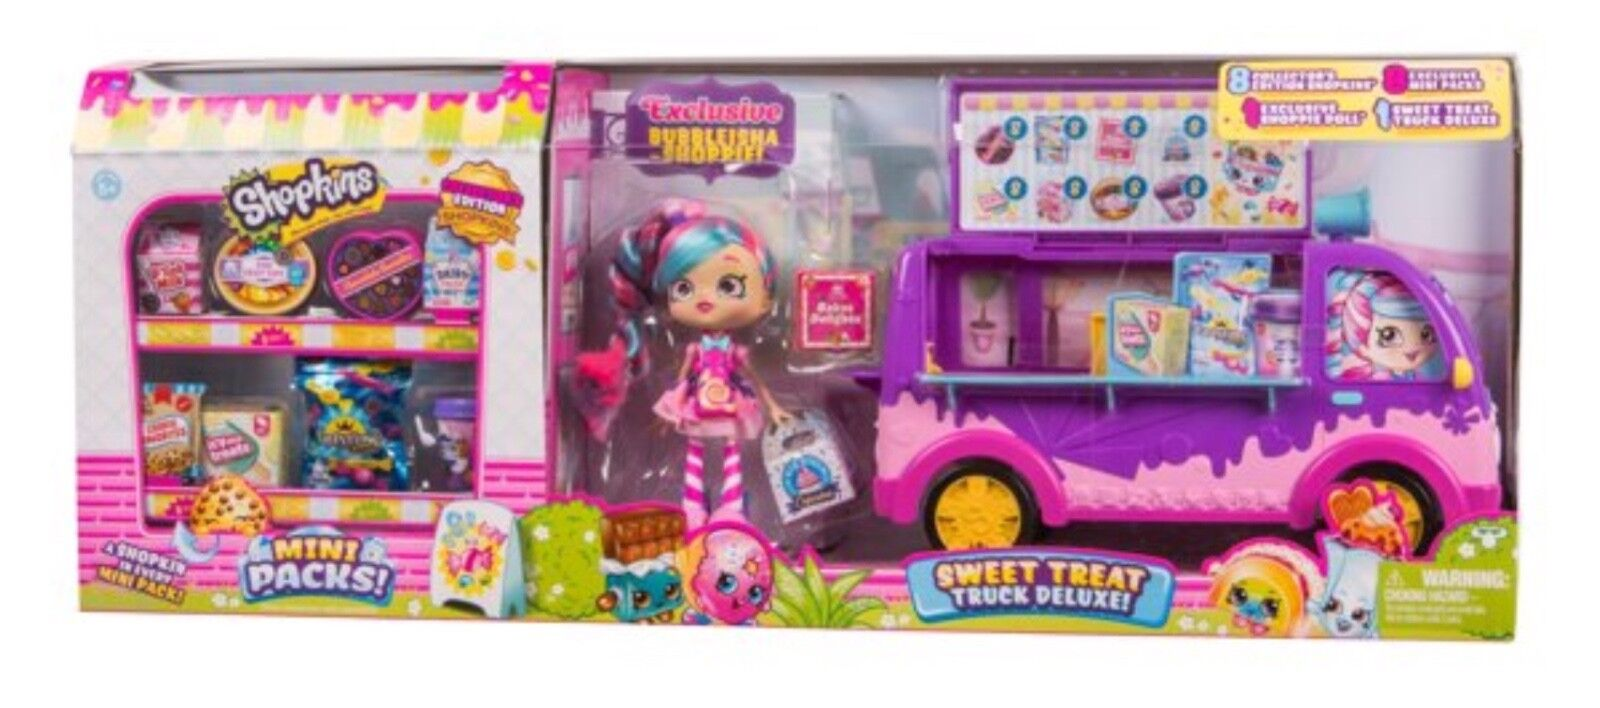 Shopkins Sweet Treat Deluxe mit 8 Exclusiv Staffel 10 Shopkins